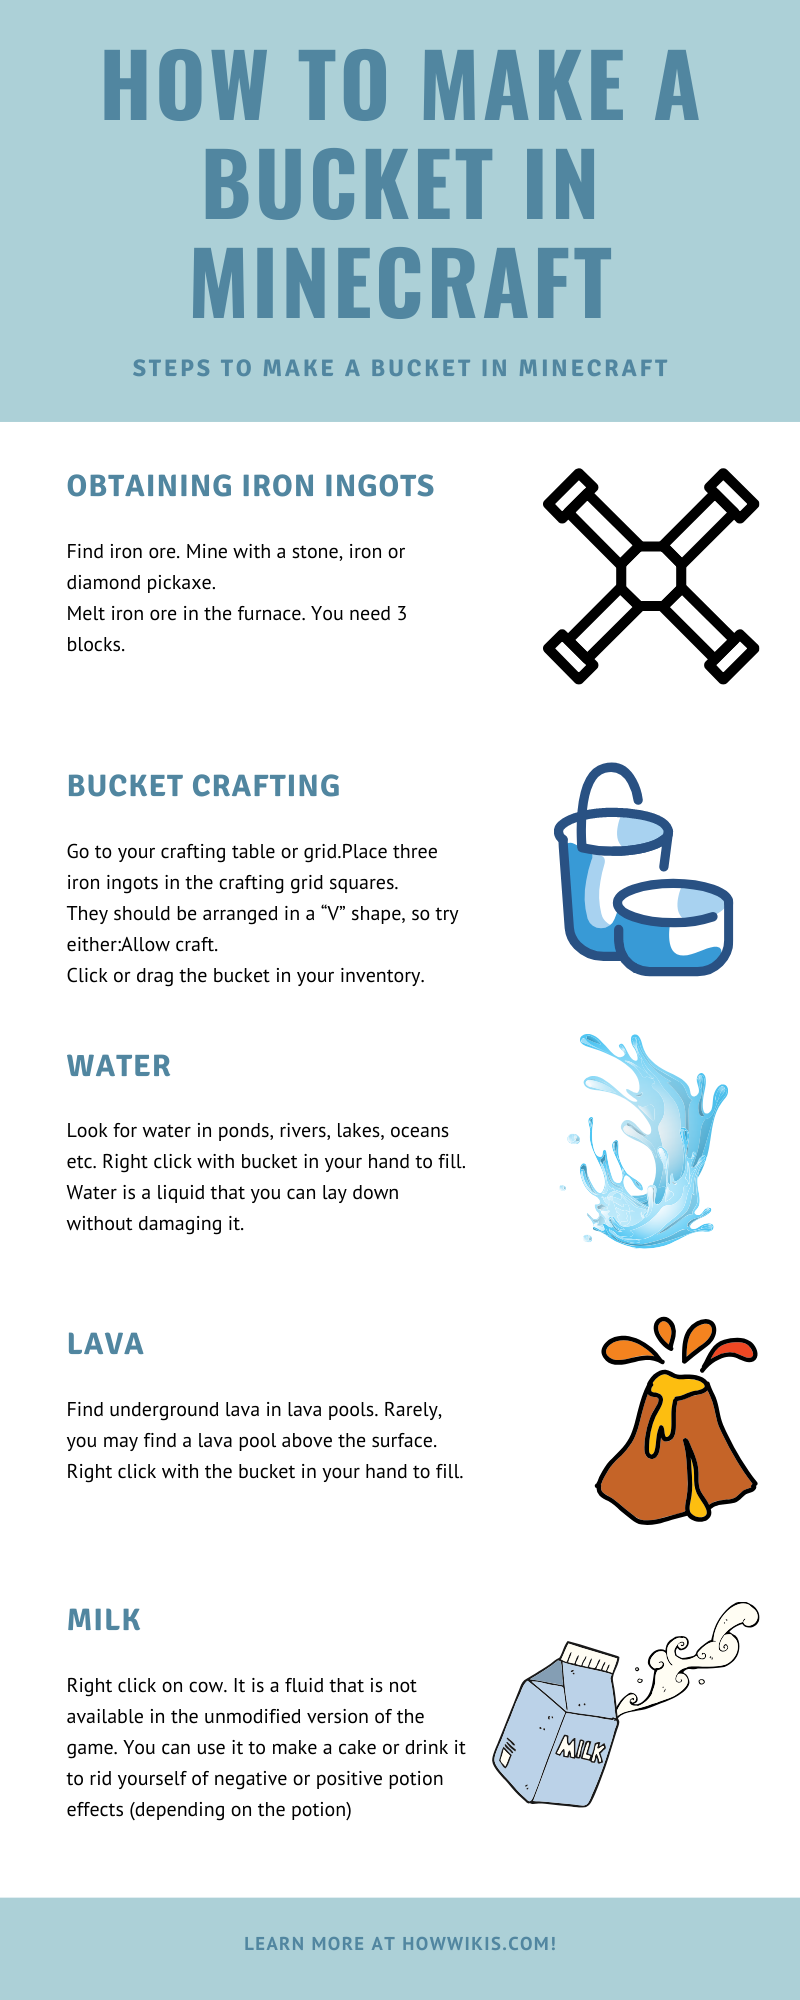 How To Fill A Bucket In Minecraft : bucket, minecraft, Bucket, Minecraft?, Make,, Minecraft,, Craft, Table